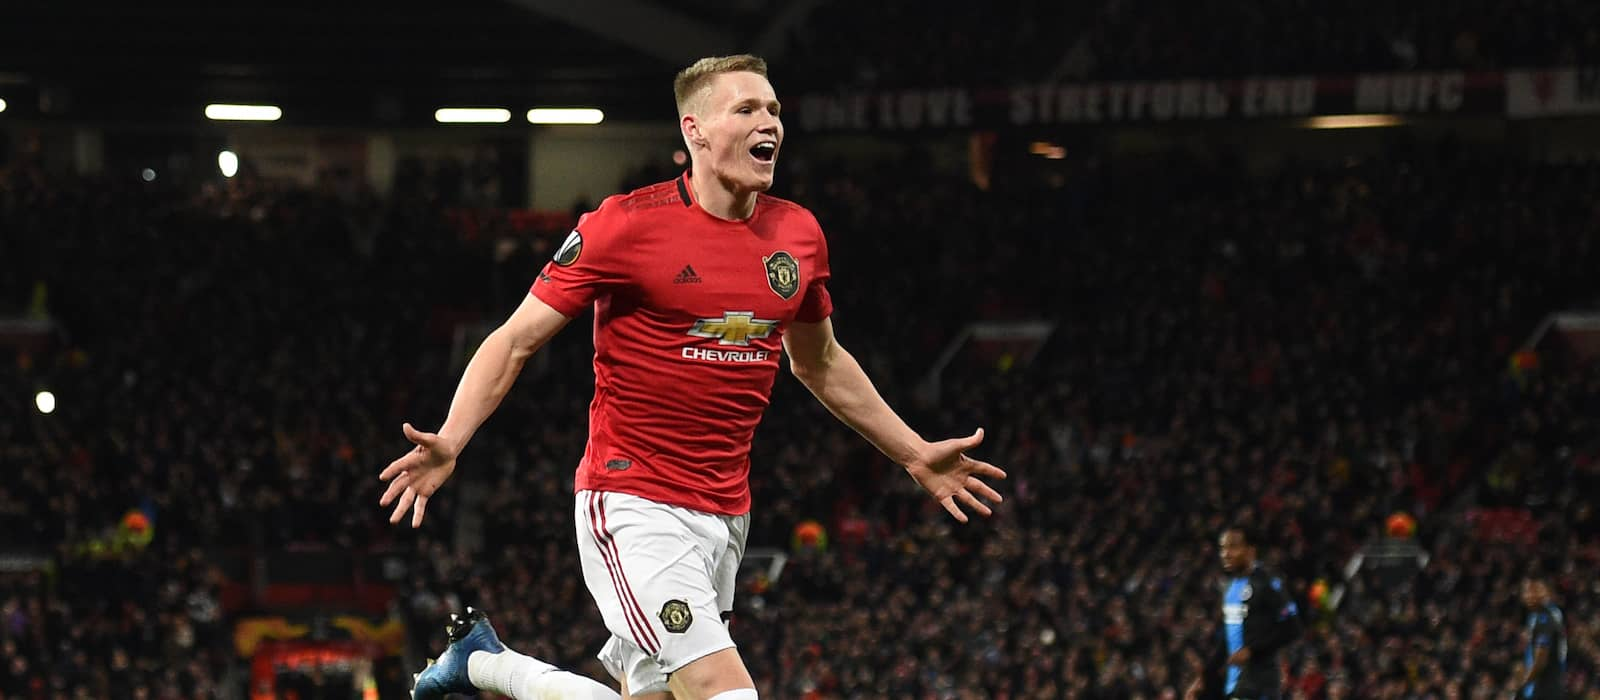 Video: Scott McTominay in fine form in Manchester United training